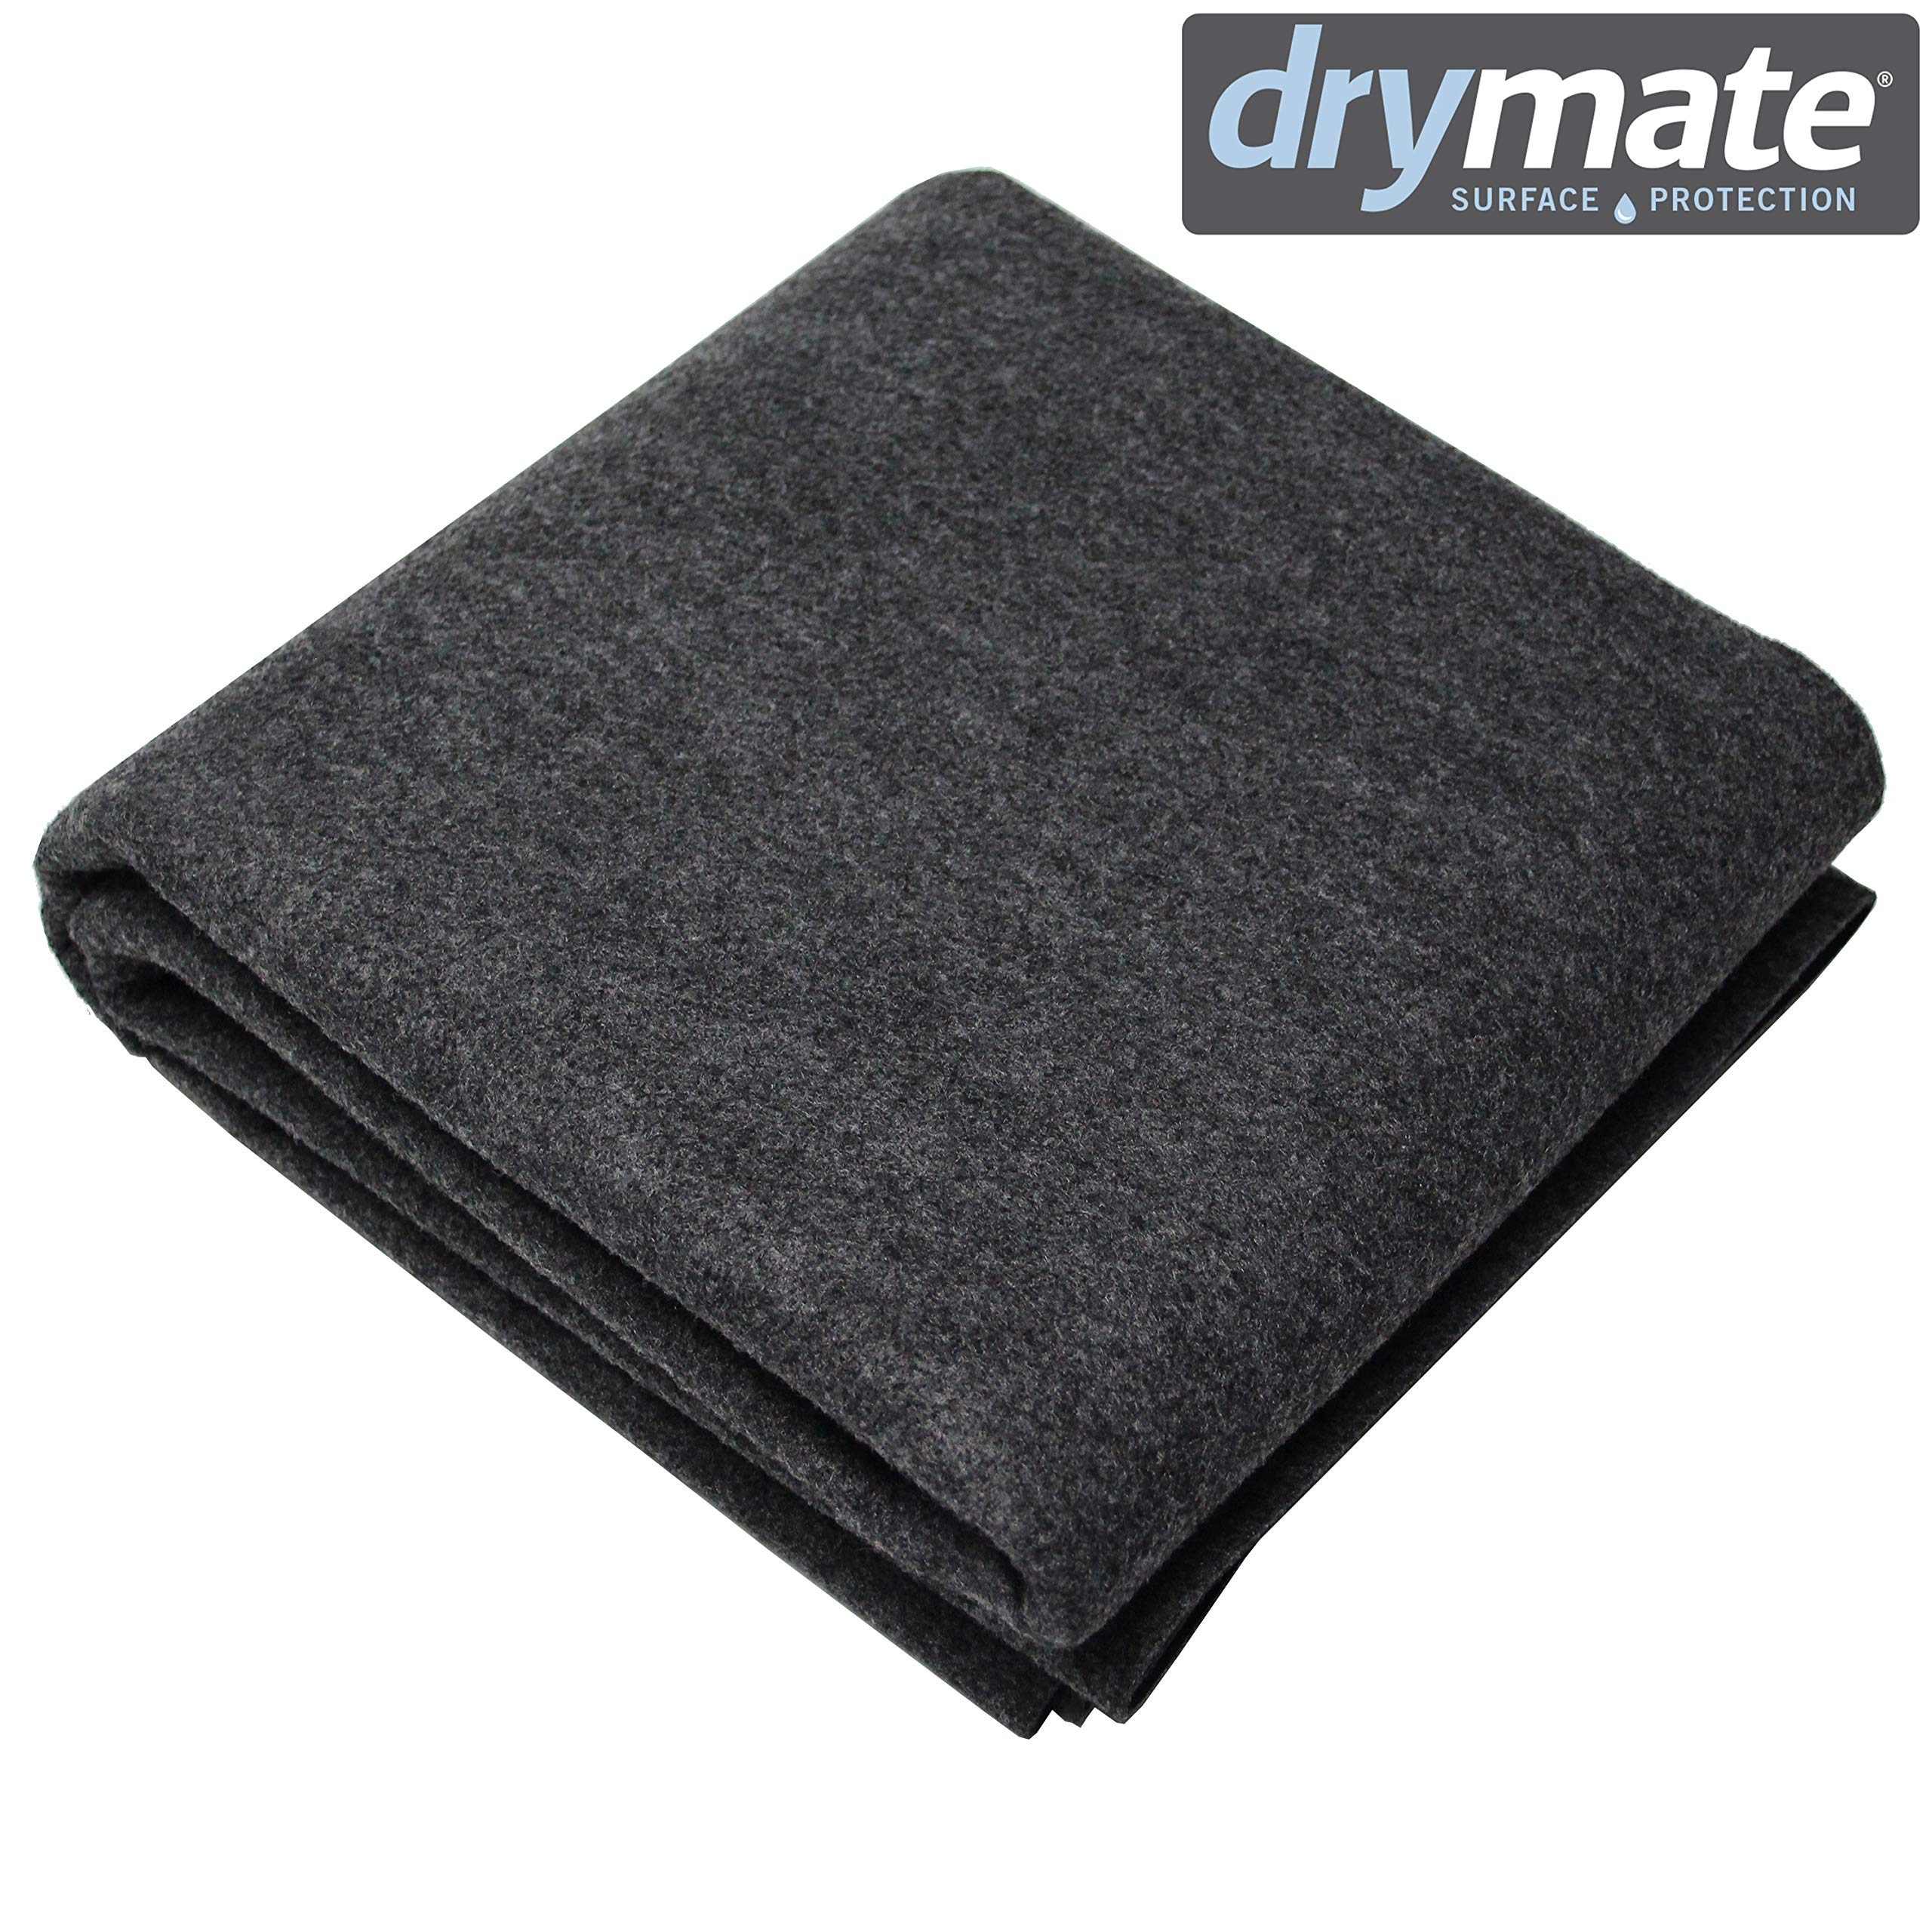 Drymate WMCB48100 Box Liner Mat - Machine Washable, Reusable and Absorbent Dog Whelping Pad - Can Be Cut to Fit, USA Made, 48 x 100 by Drymate